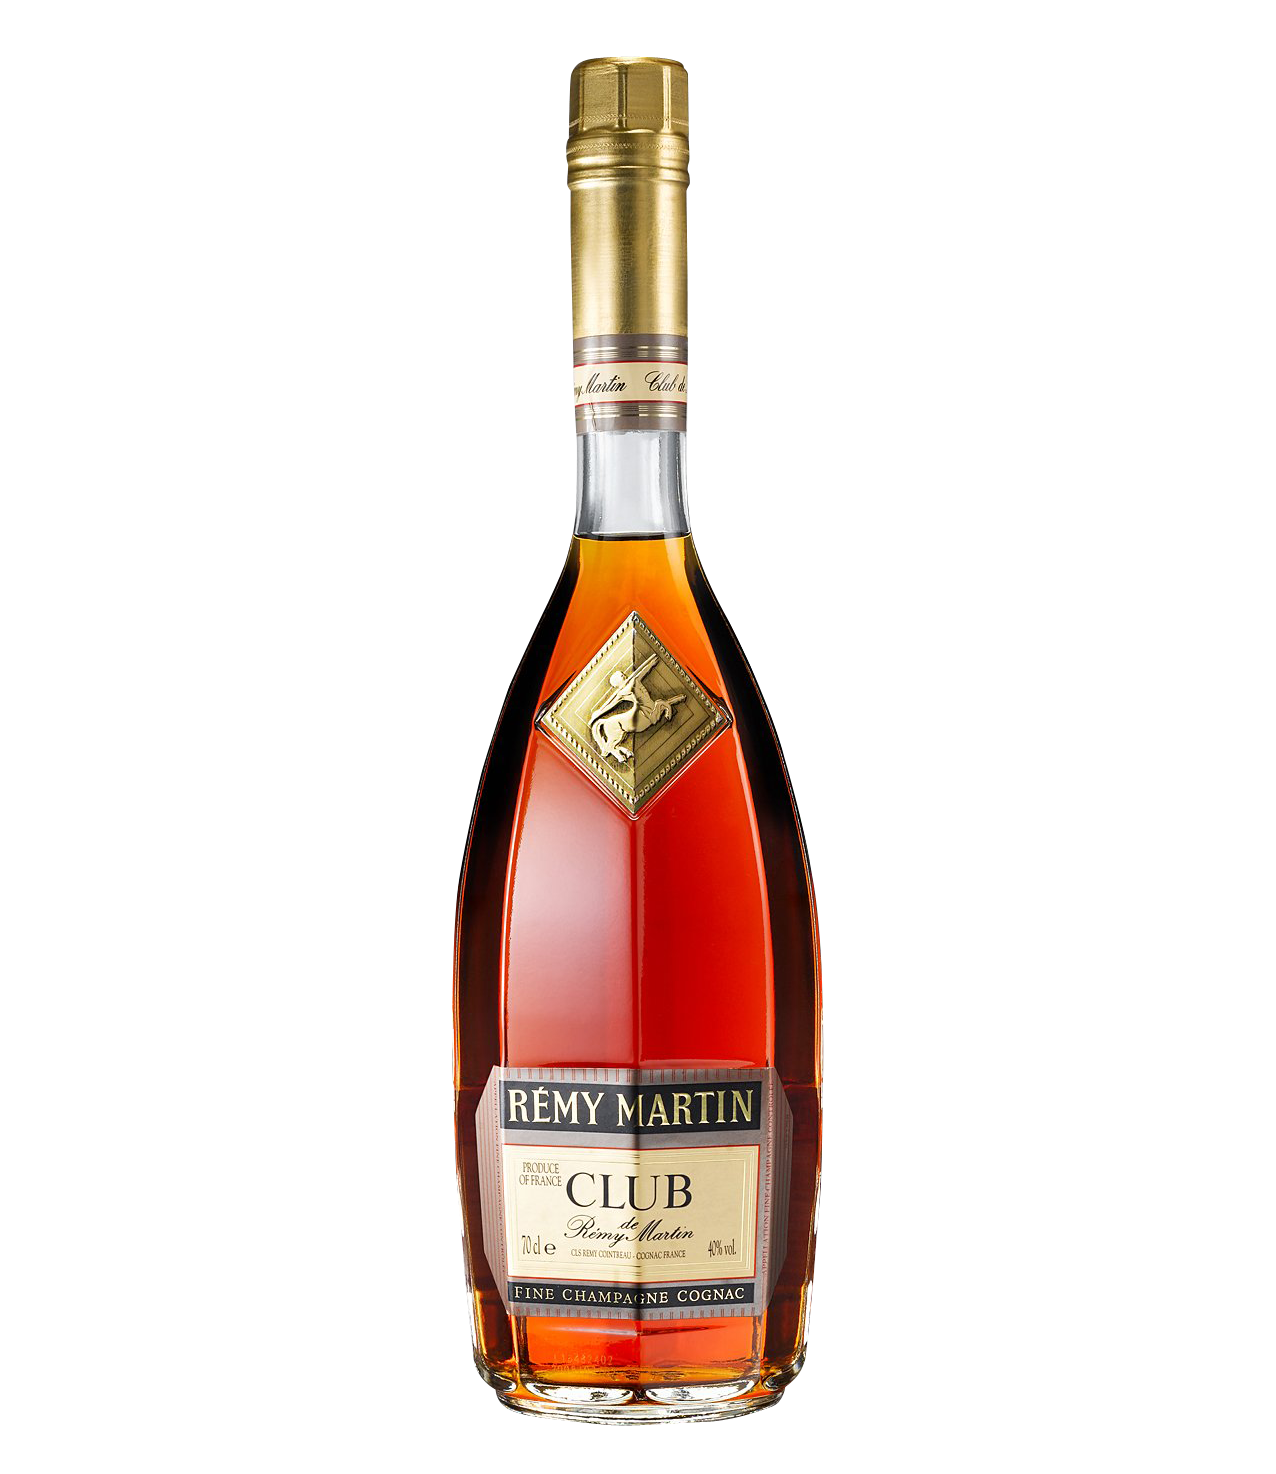 Drinking clipart brandy bottle. Wine png image purepng